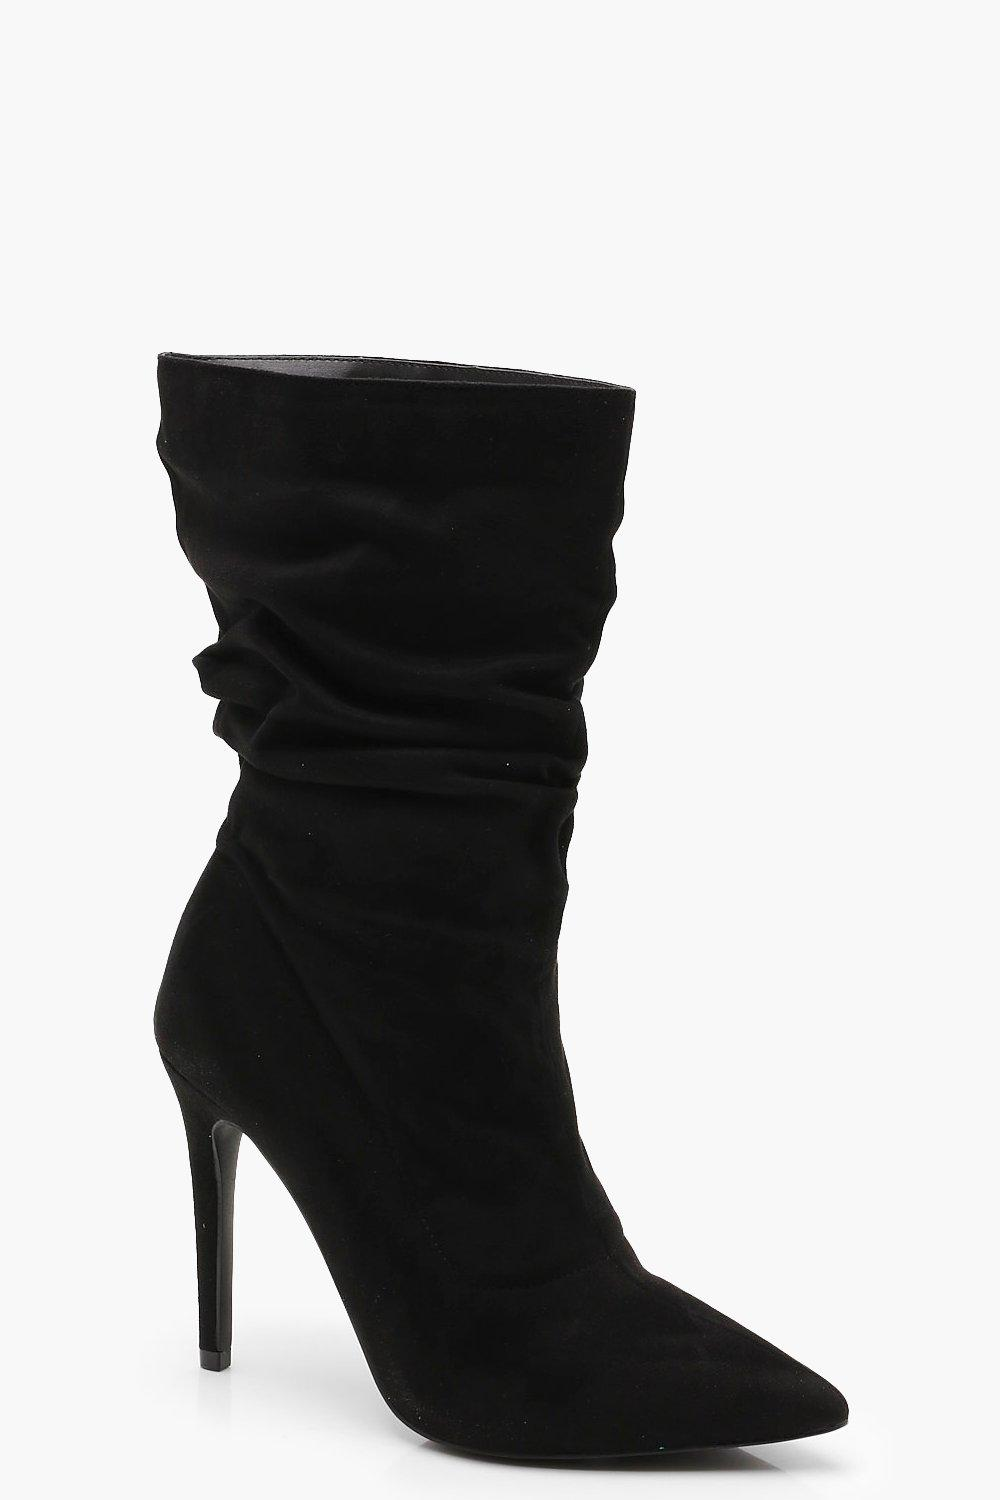 1ce03df95b86 Womens Black Pointed Toe Ruched Calf High Shoe Boots. Hover to zoom